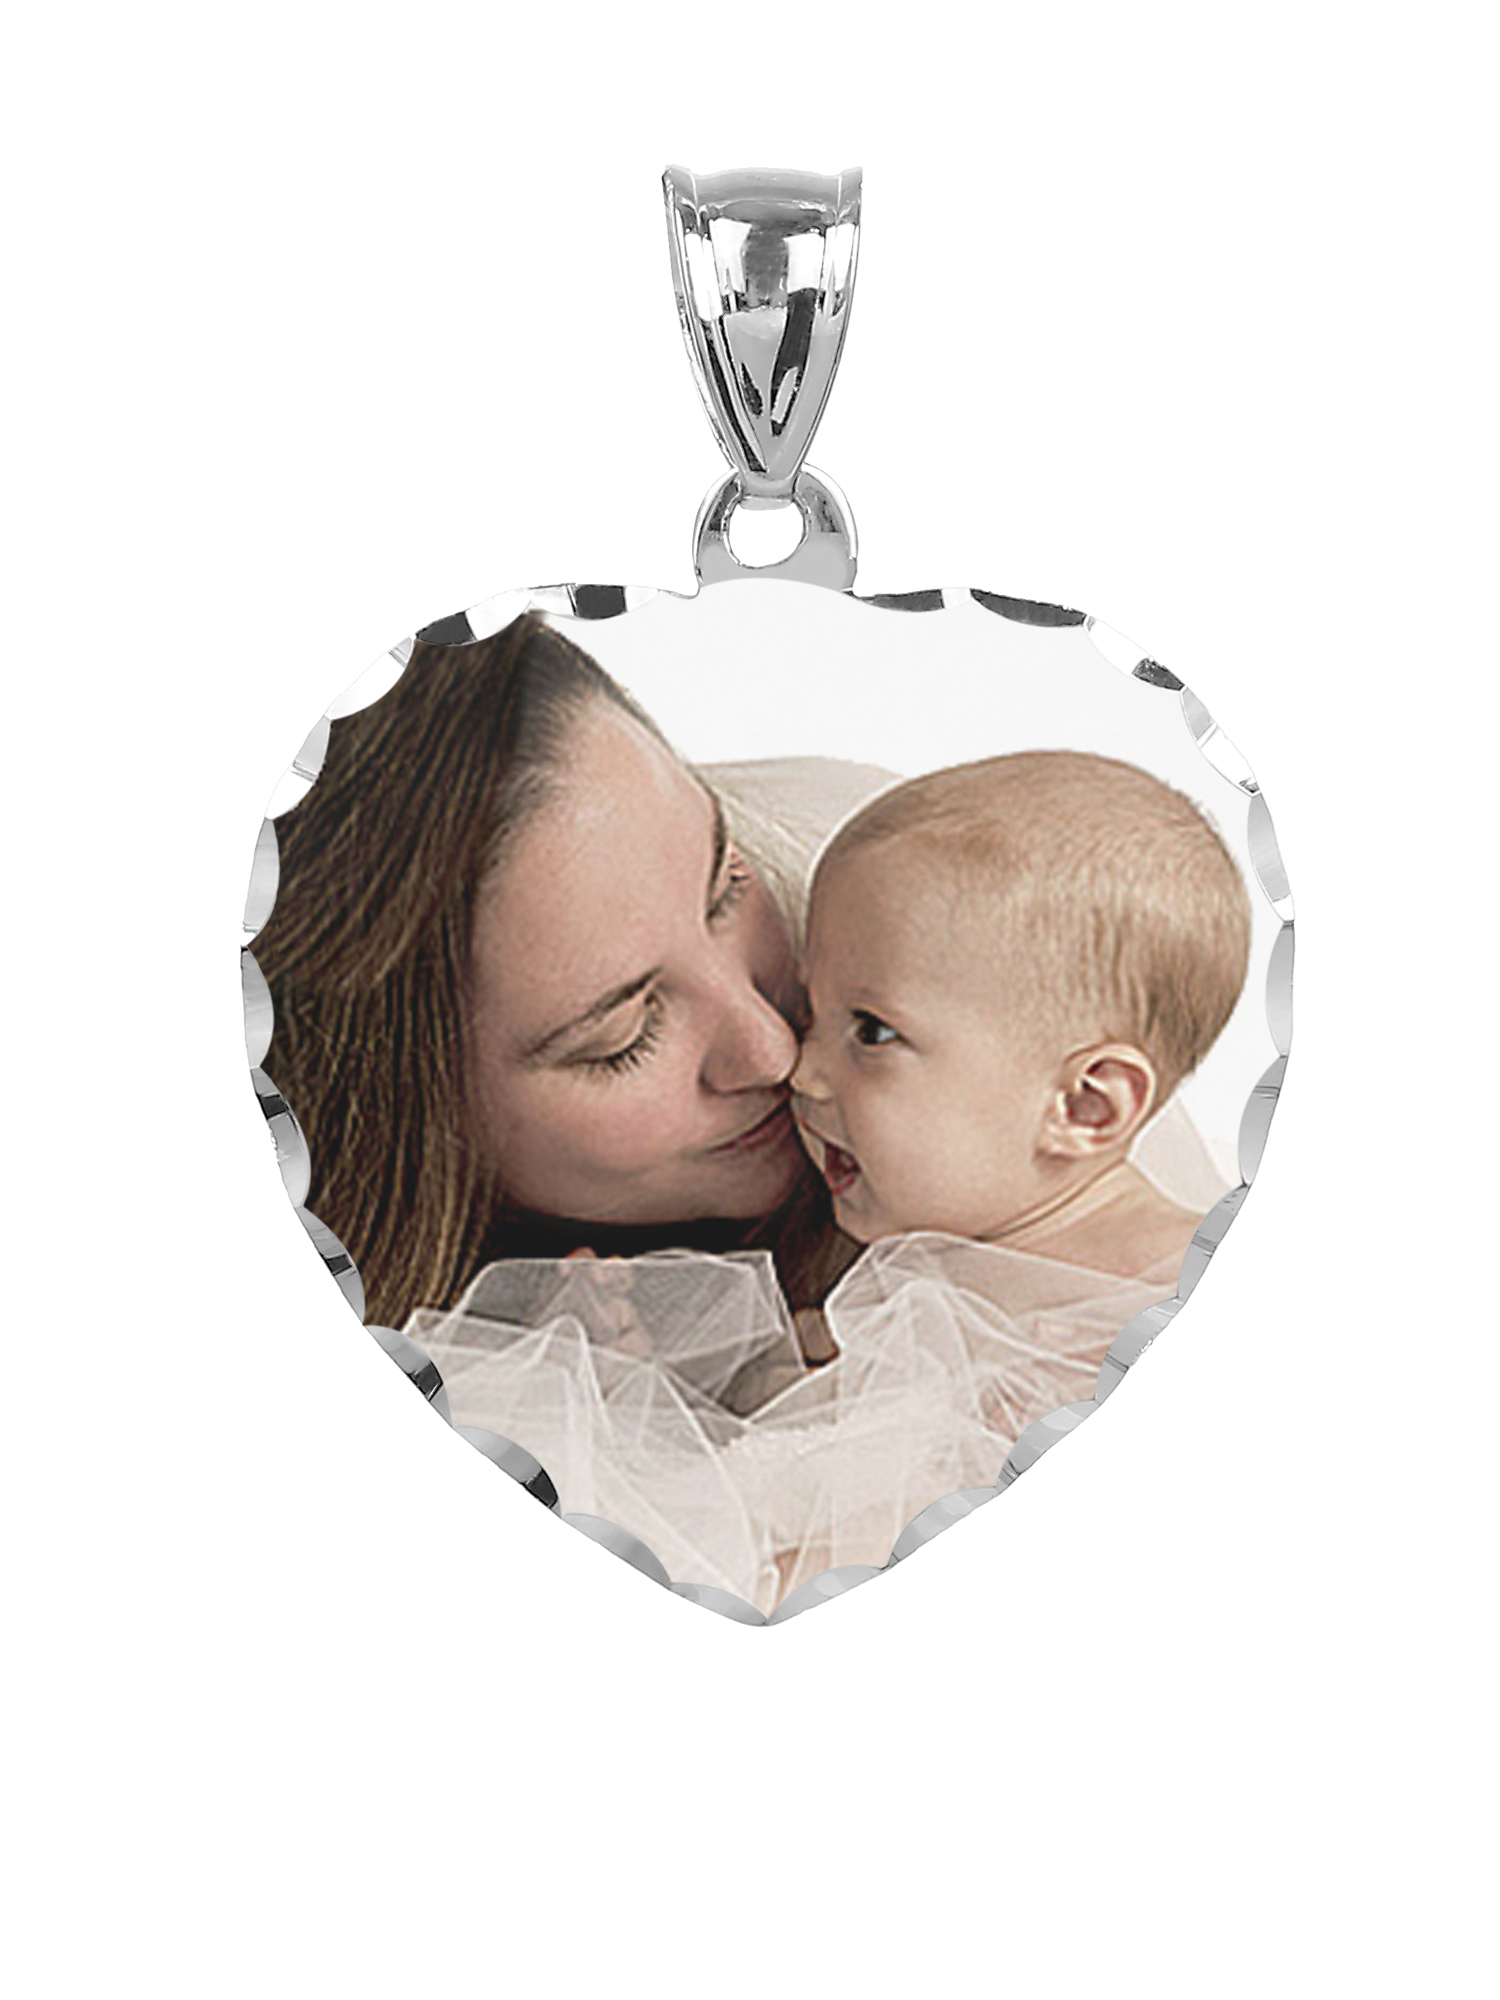 Personalized Sterling Silver, Gold Plated, 10k or 14k Heart Design Color Photo Charm with Diamond Cut Border